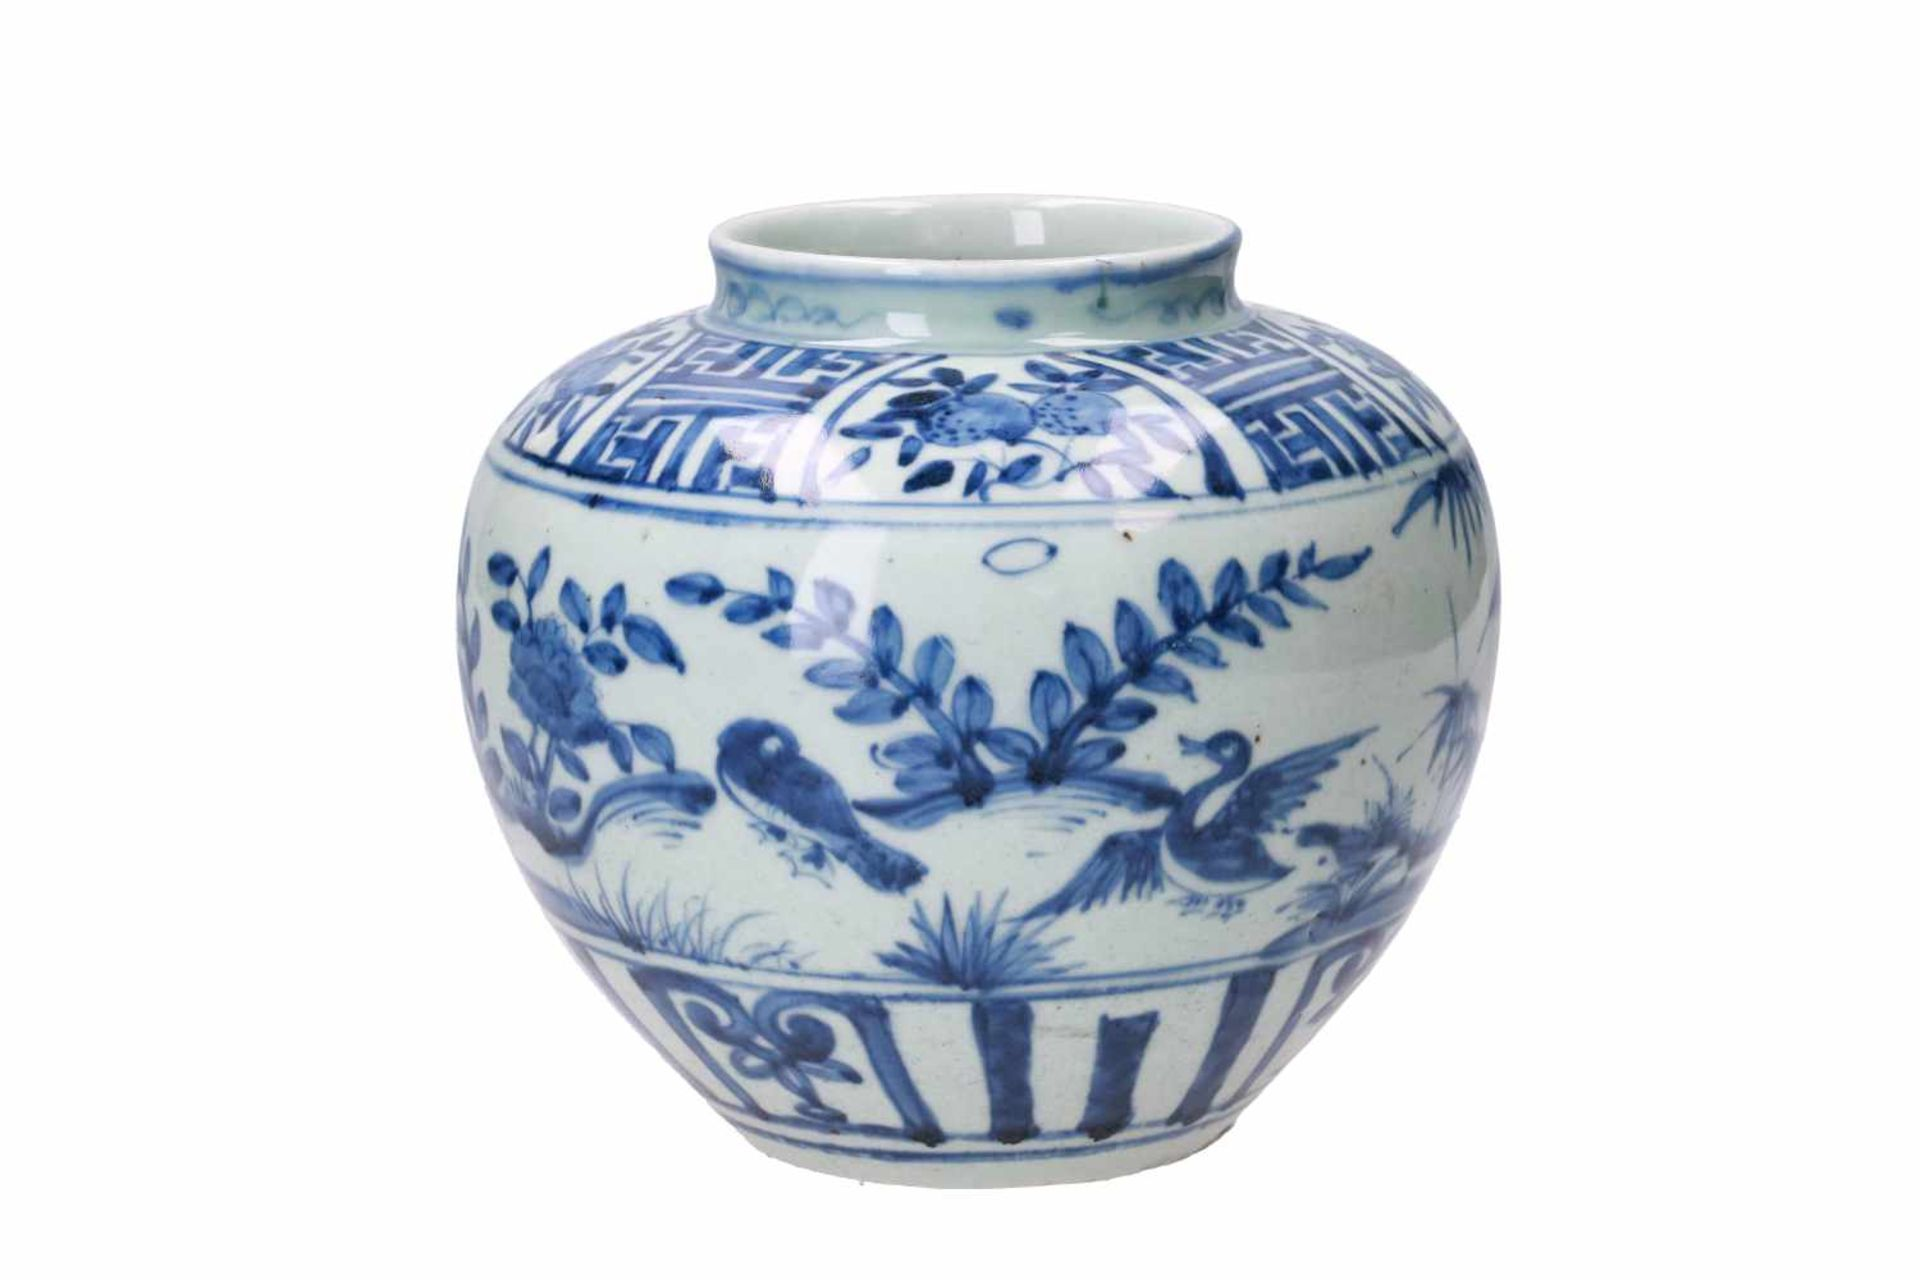 A blue and white porcelain jar, decorated with ducks, peaches and flowers. Unmarked. China, Wanli. - Bild 2 aus 7